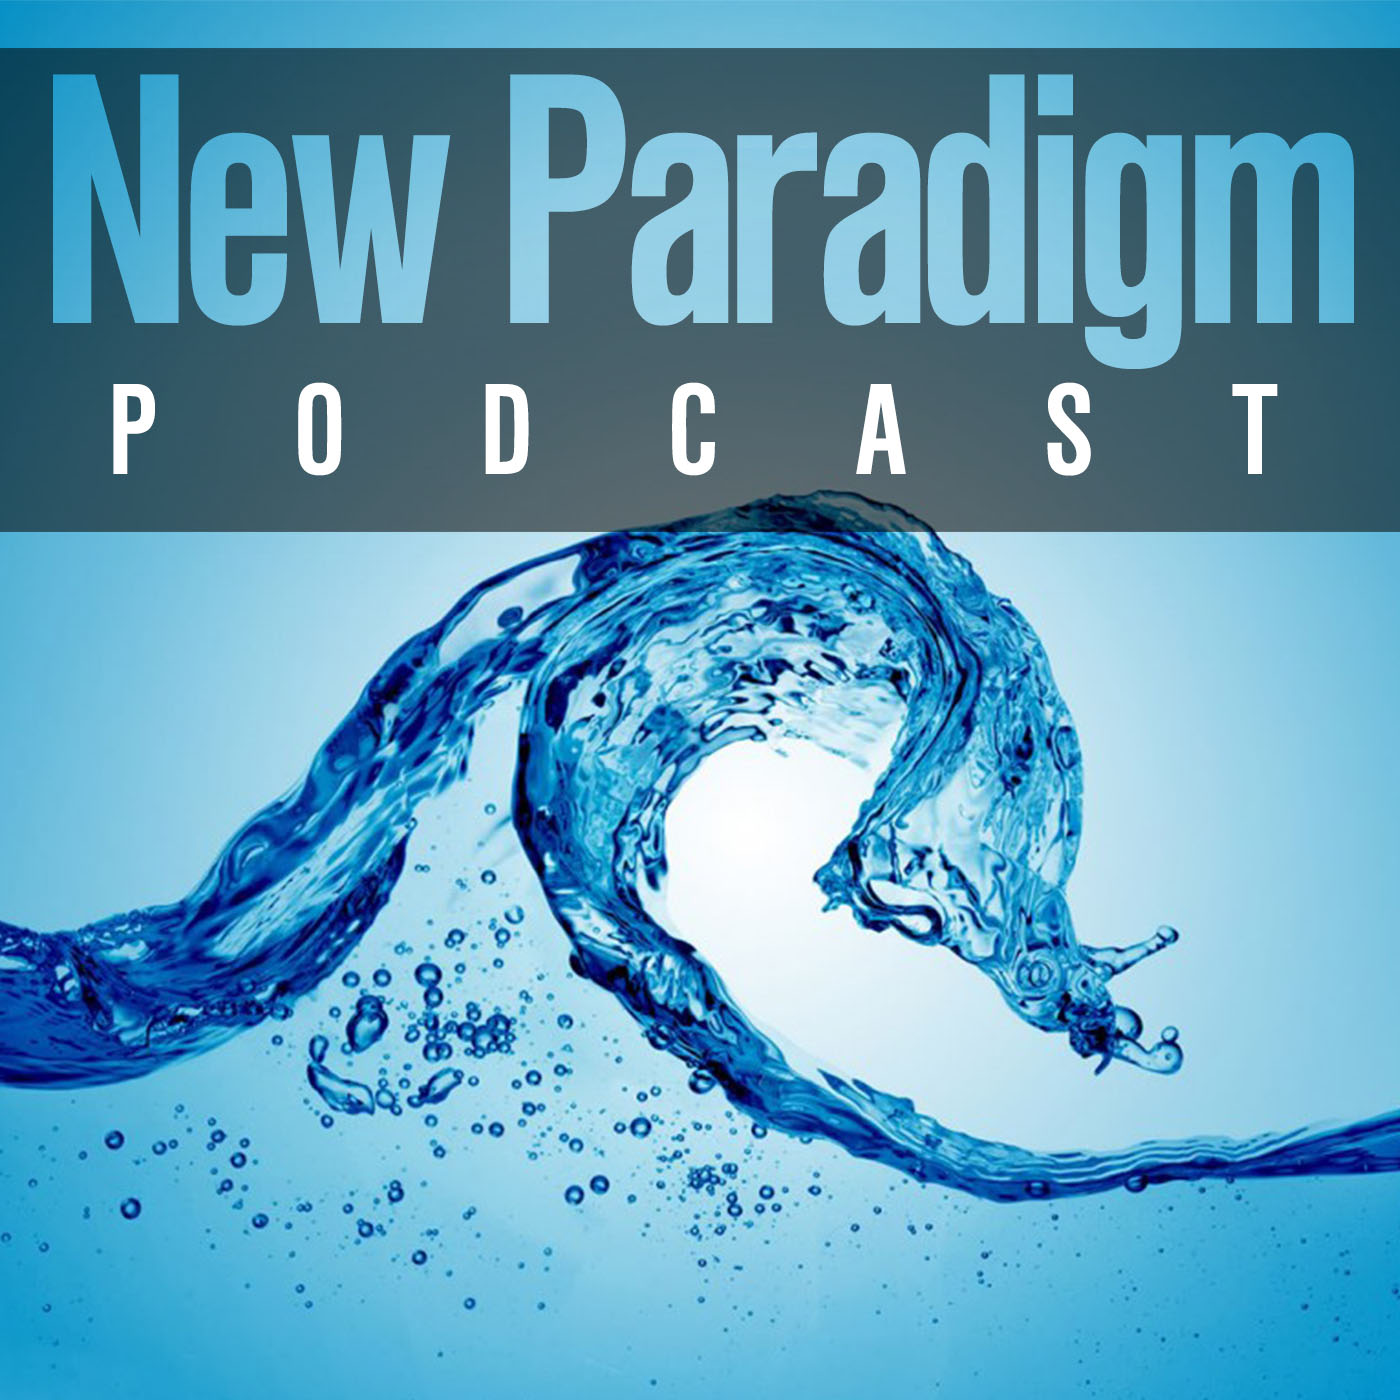 The New Paradigm Podcast